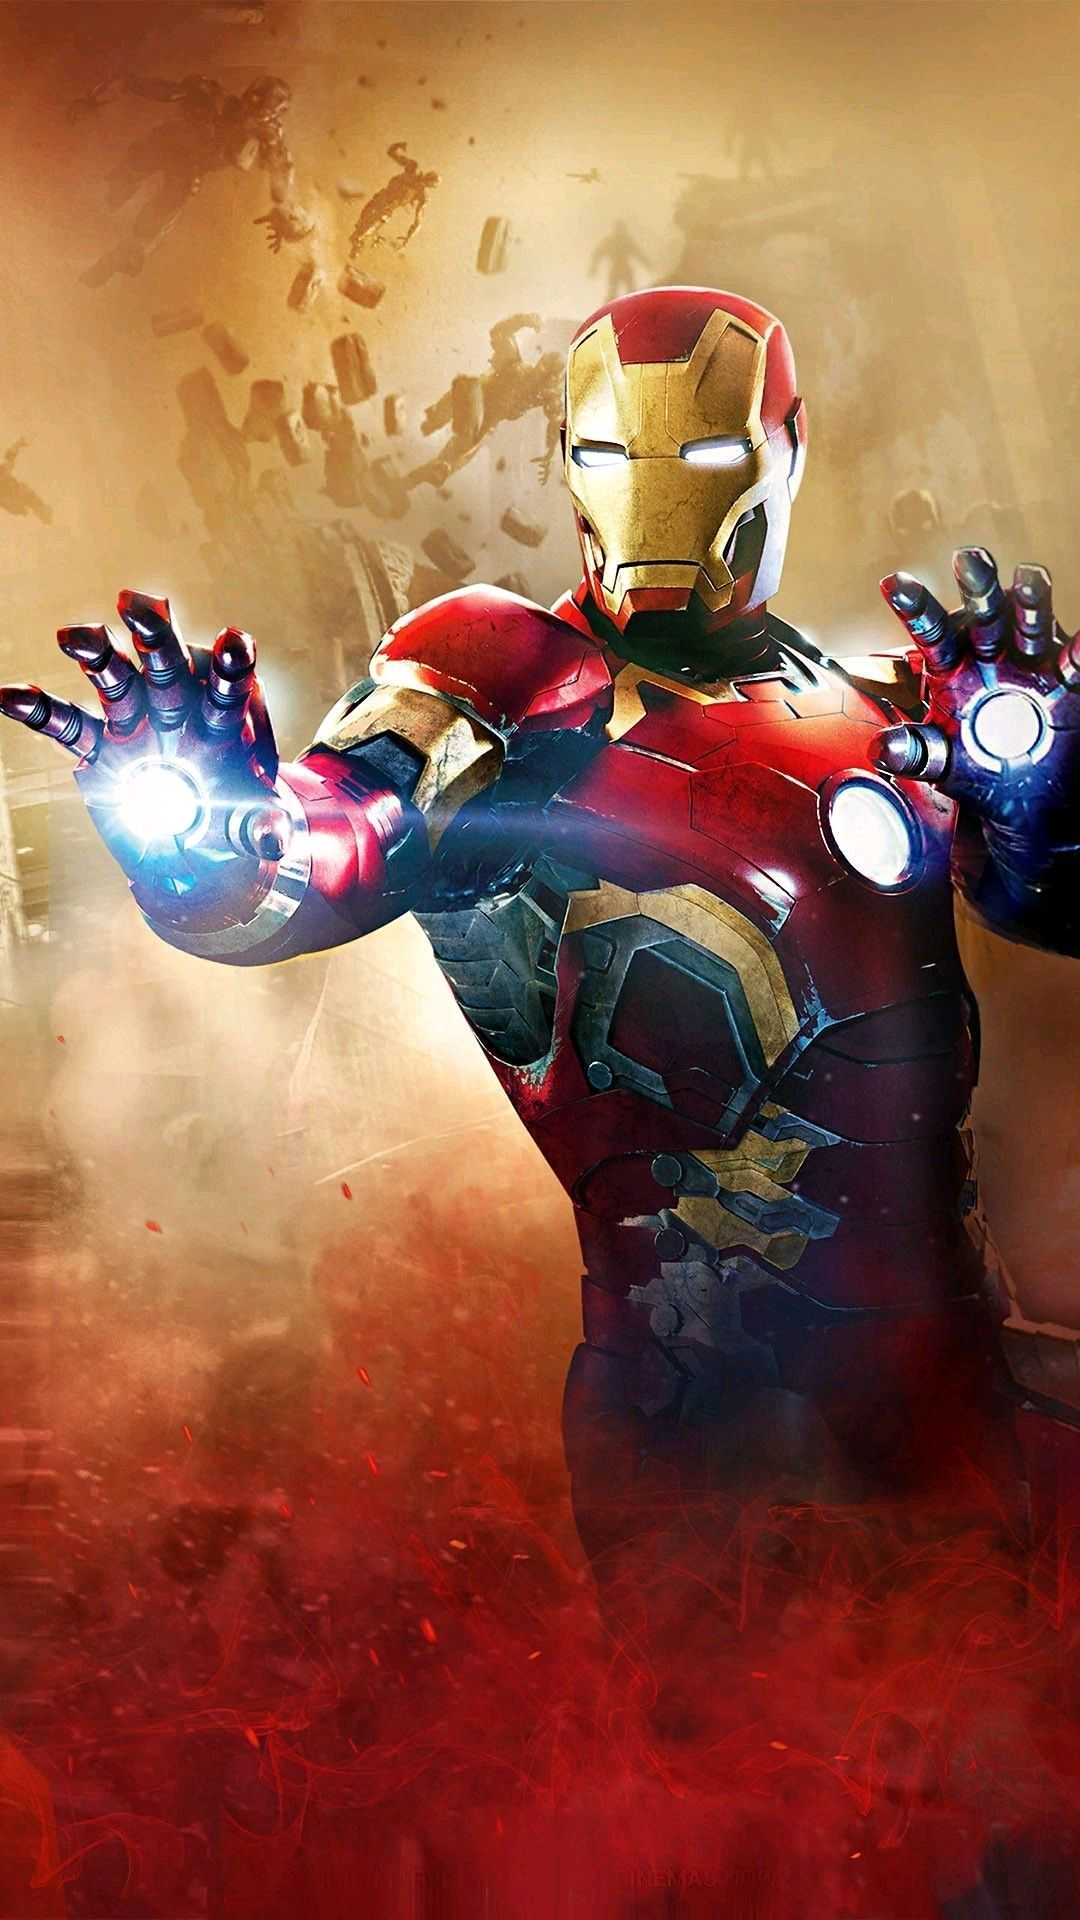 Iron Man Suite Avengers Movie iPhone Wallpaper iphoneswallpapers com